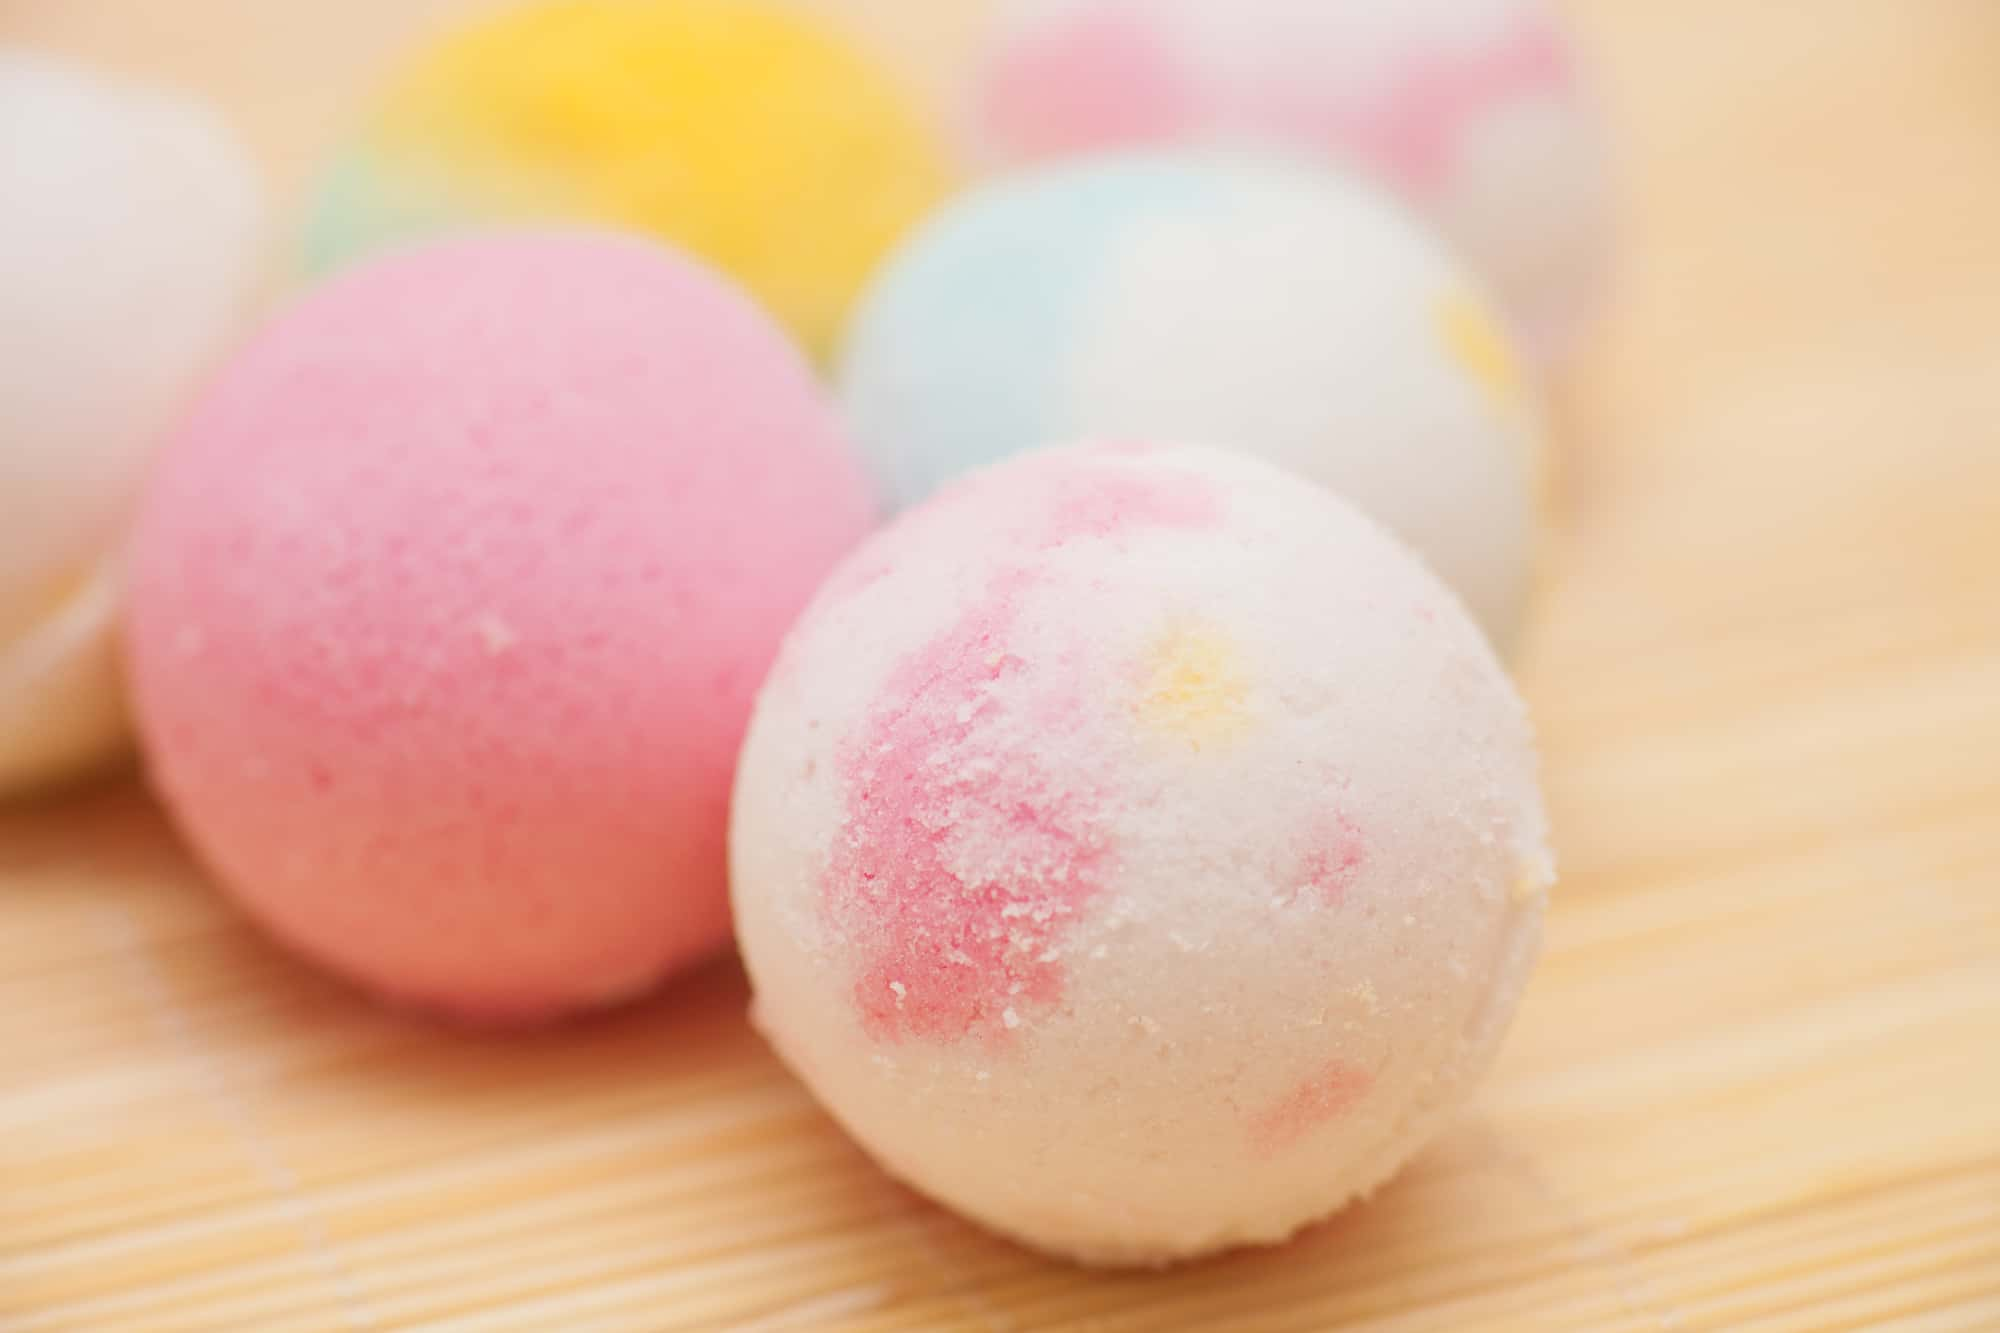 pink and white Bath Bombs